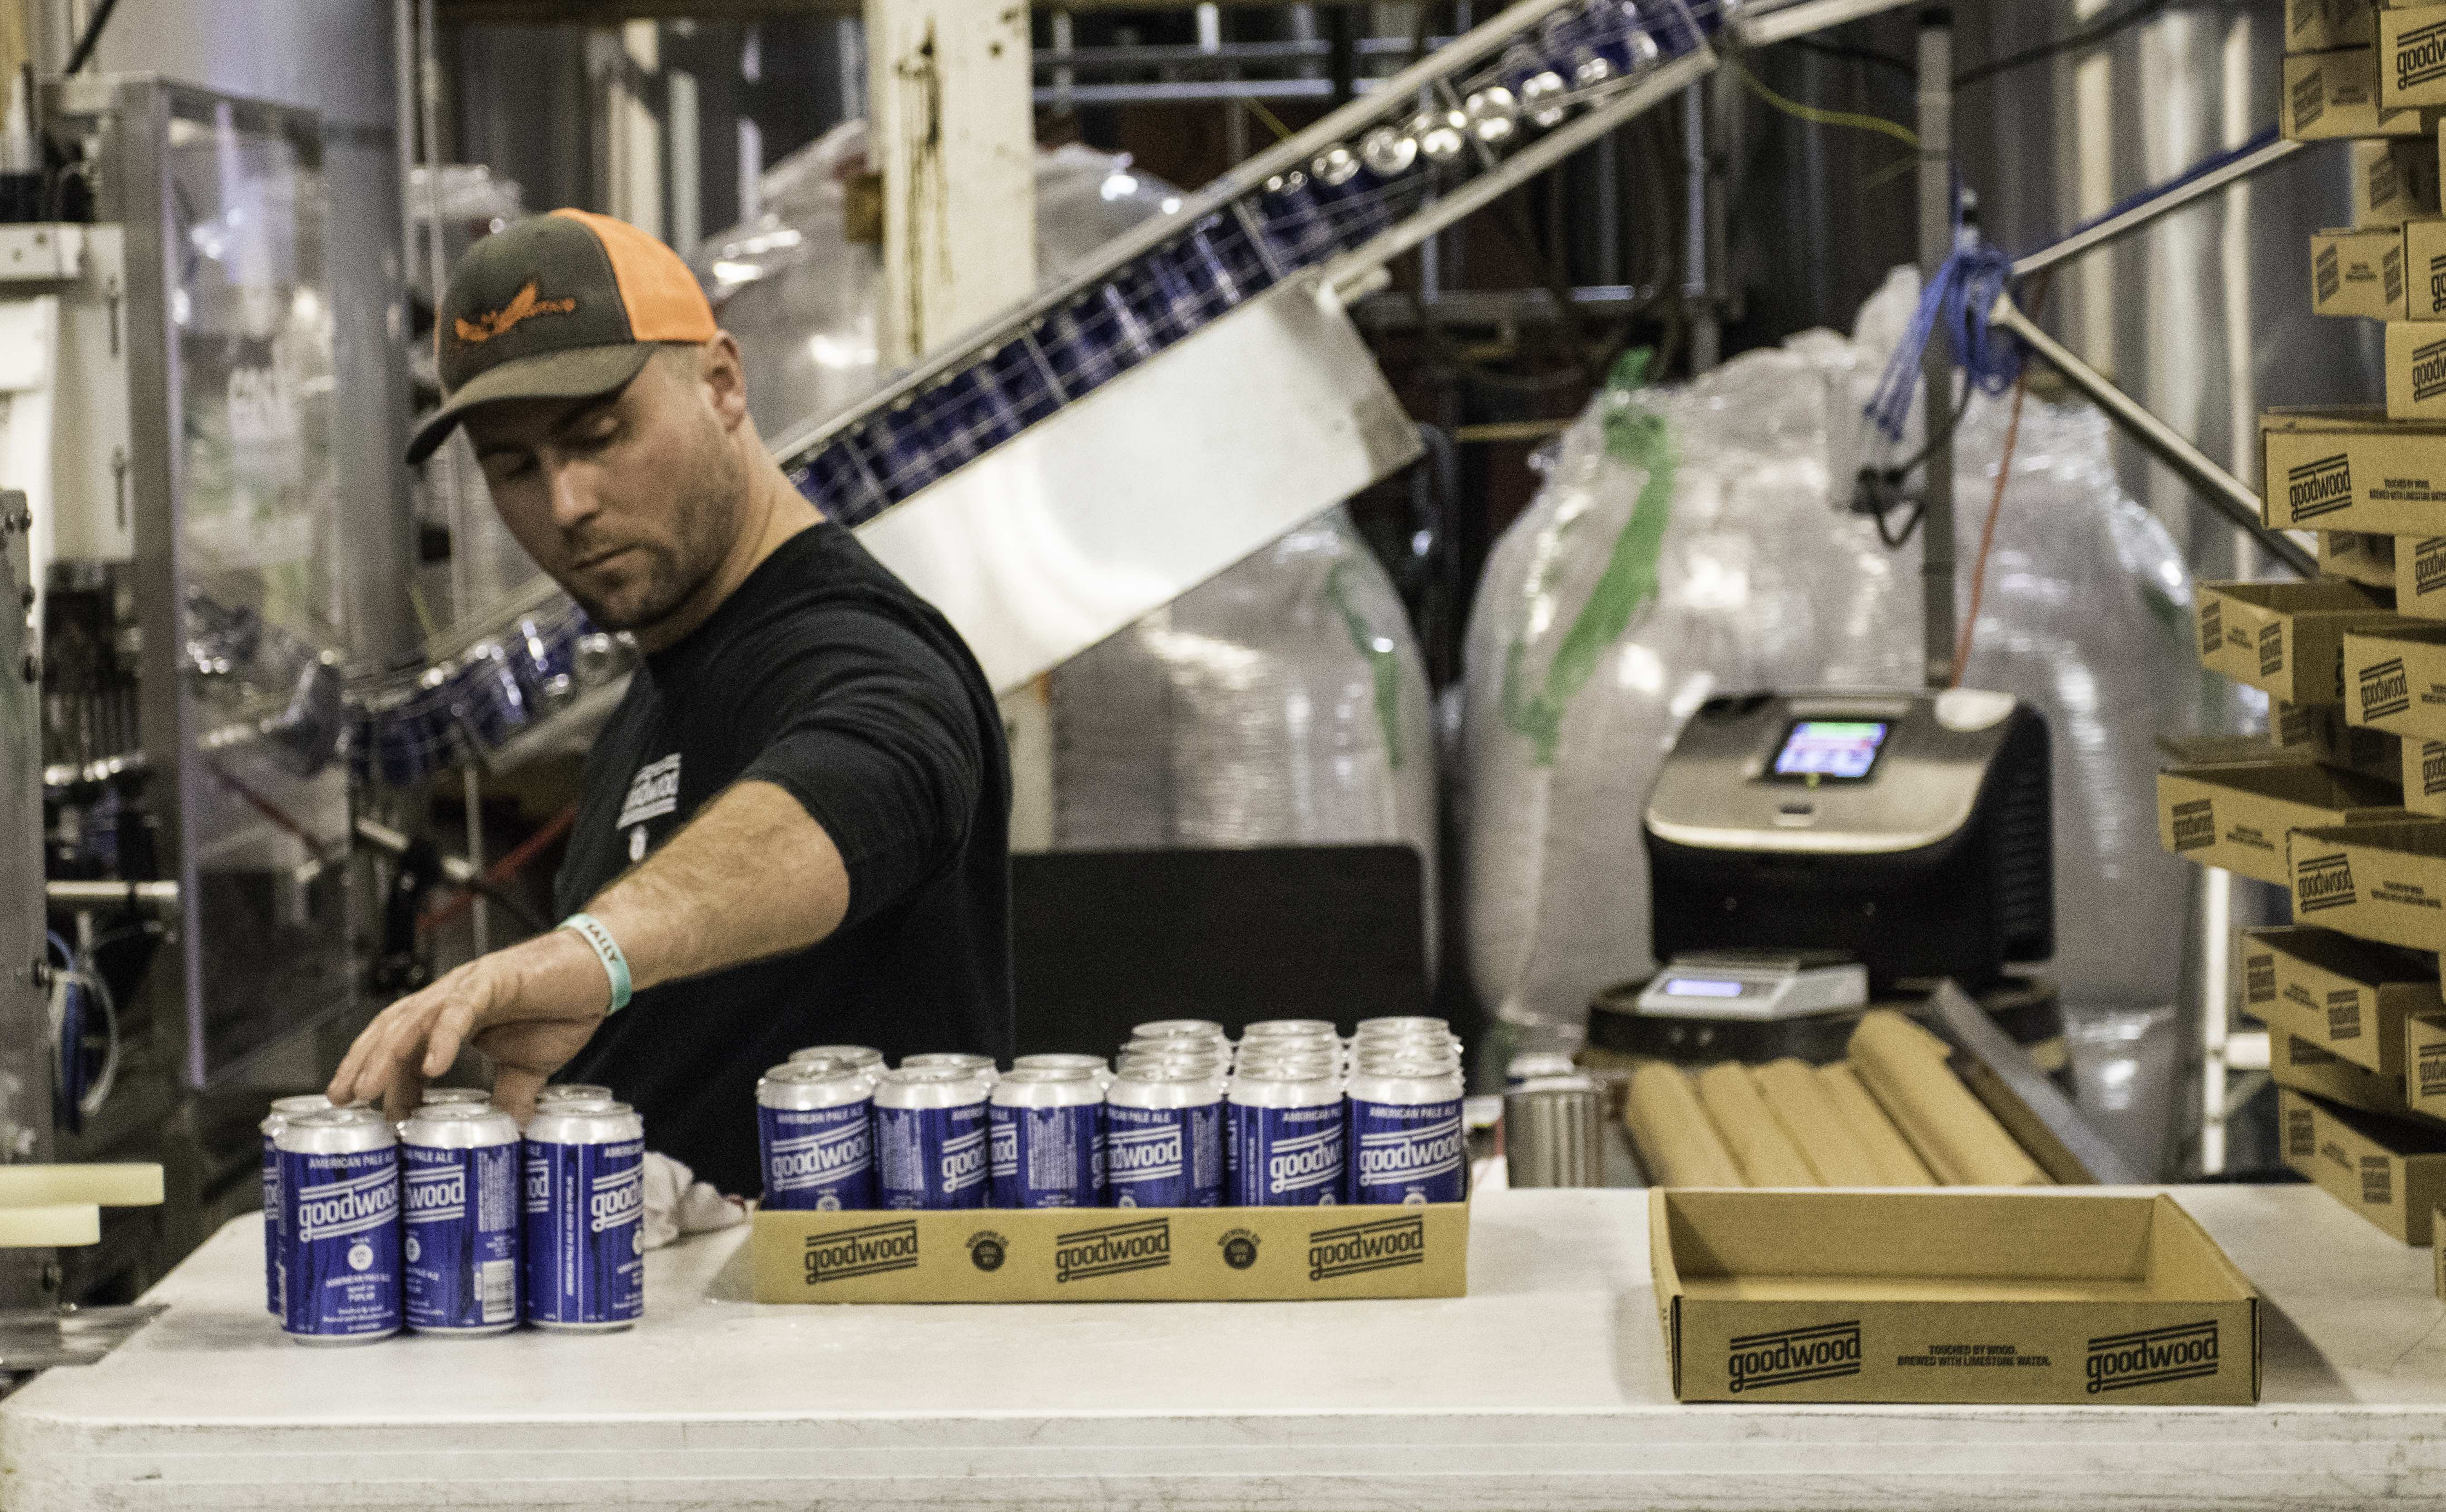 Goodwood Brewing Company To Launch American Pale Ale Cans To Honor American Heroes